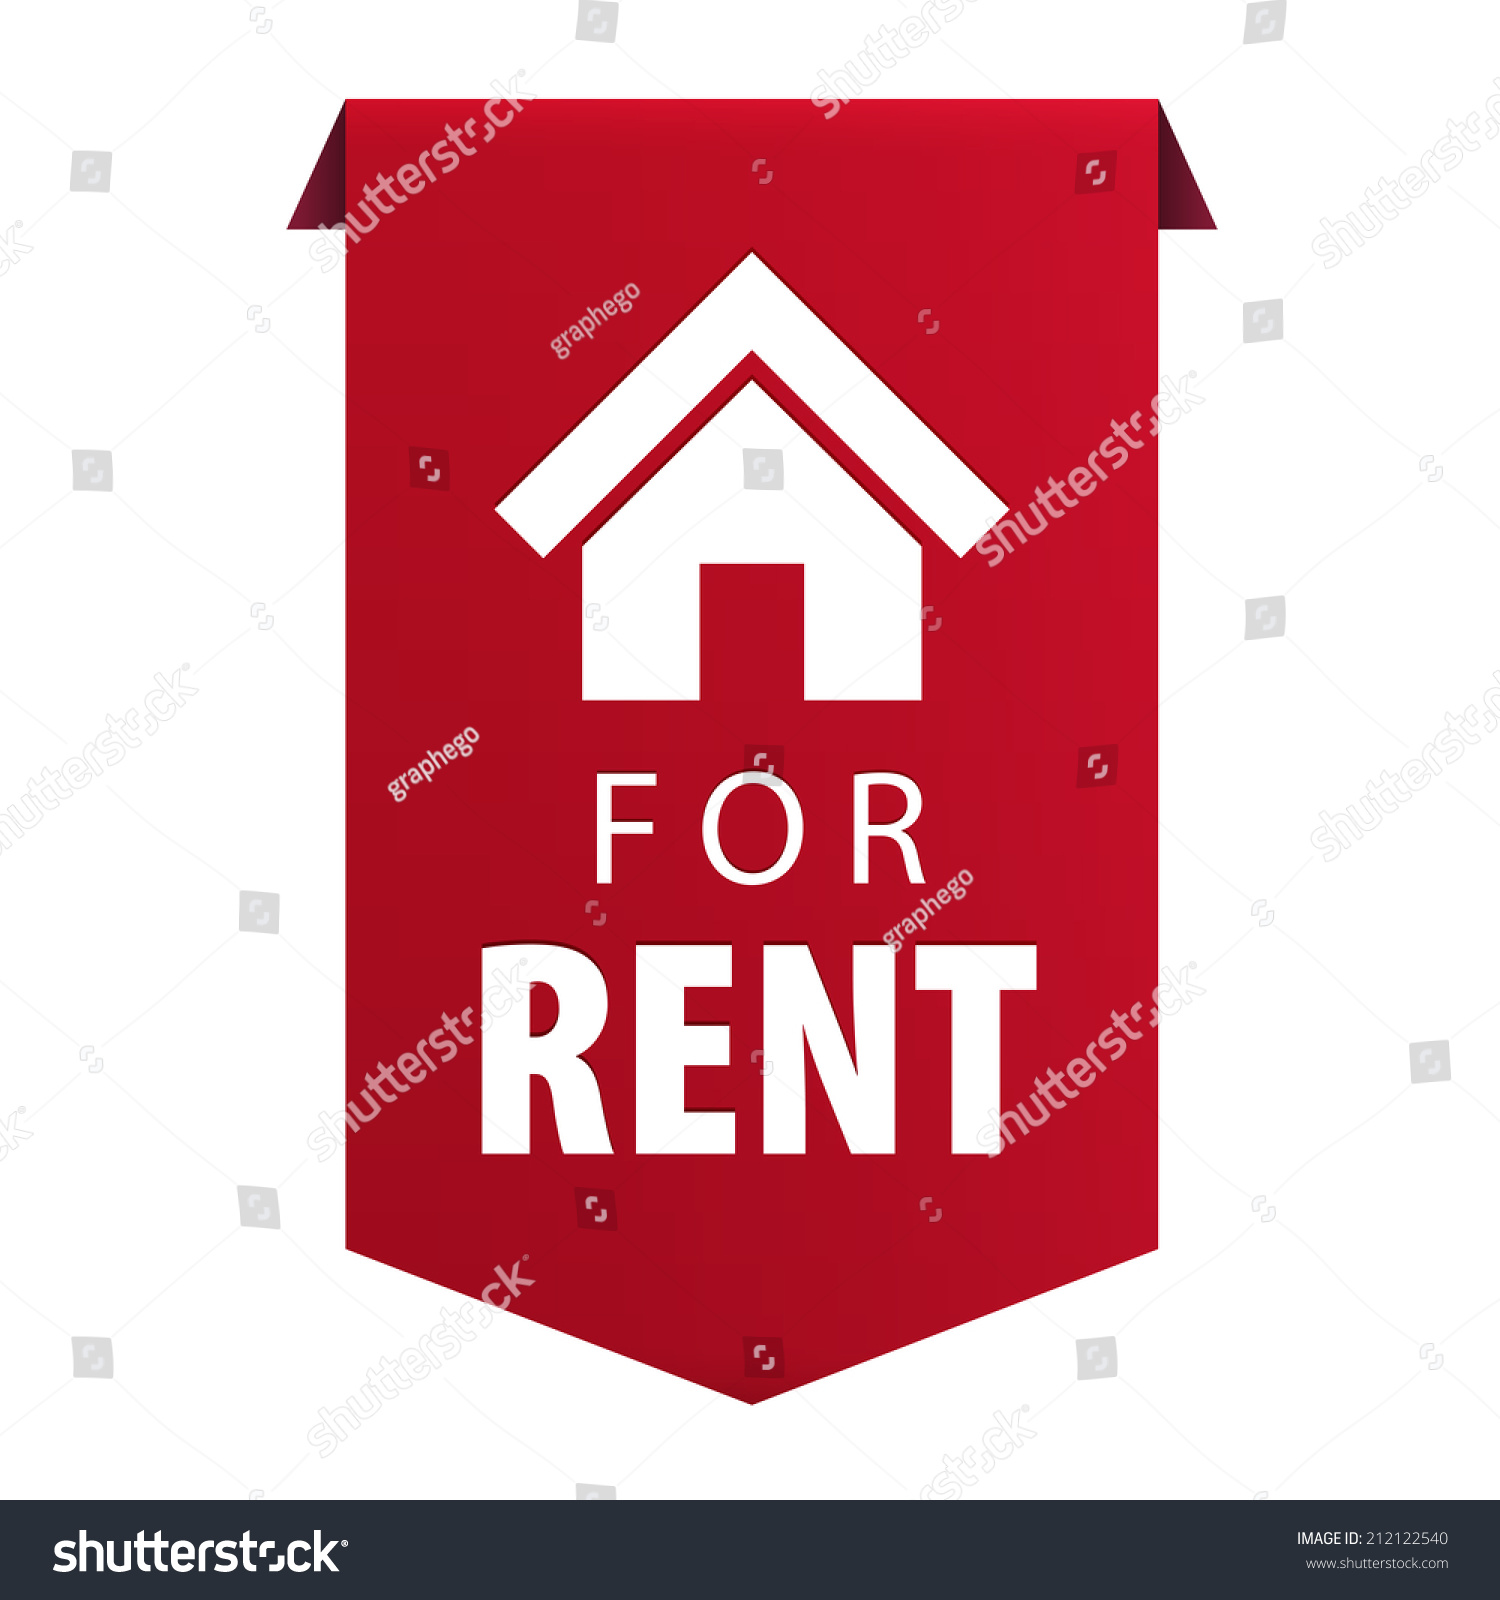 Rent ribbon banner icon real estate stock illustration 212122540 for rent ribbon banner icon real estate symbol isolated on white background illustration biocorpaavc Image collections